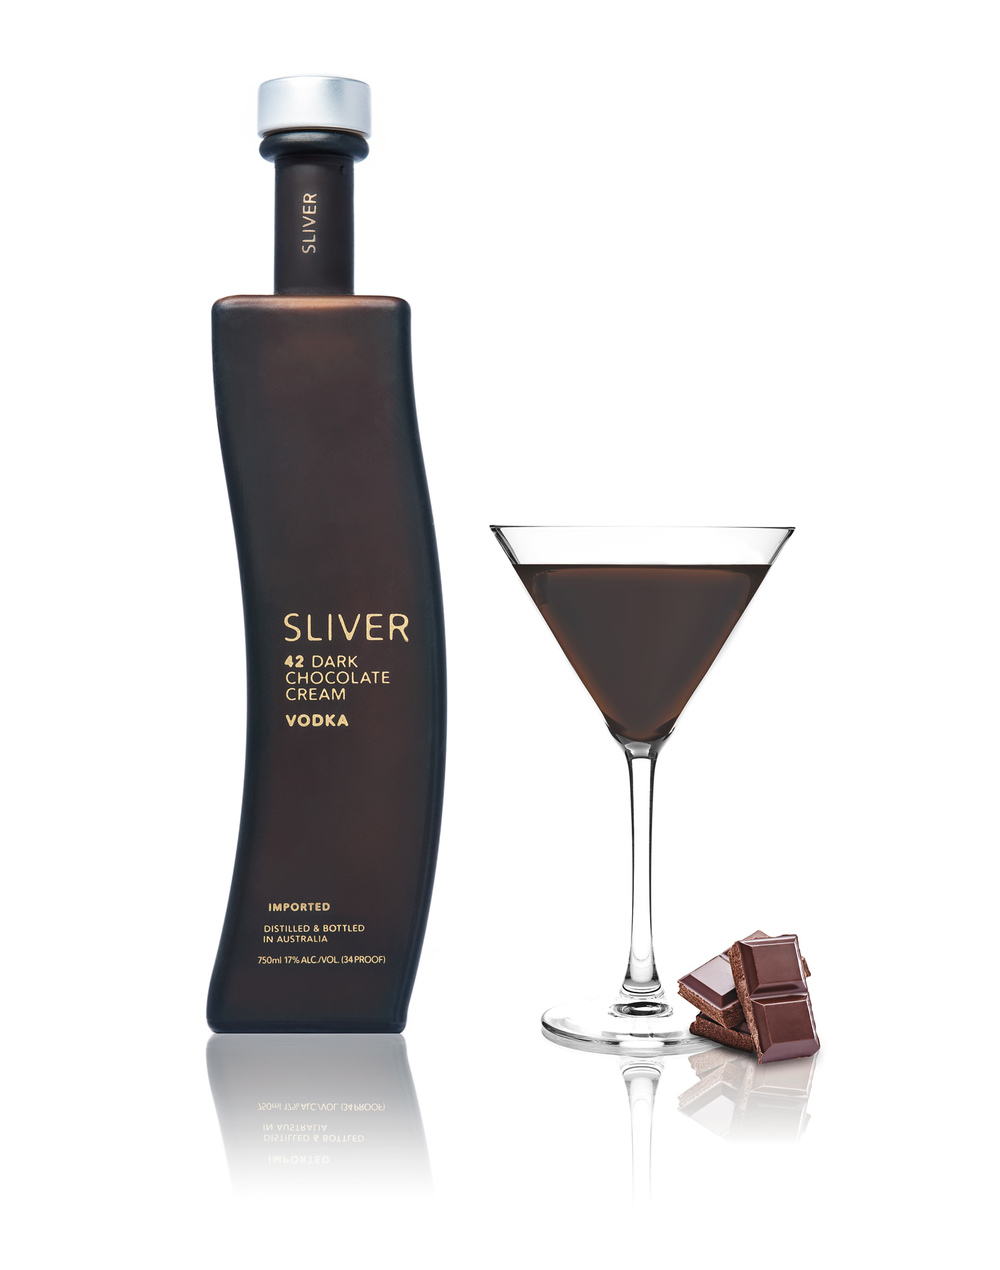 Sliver-Dark-Choc-Cream-1-display.jpg